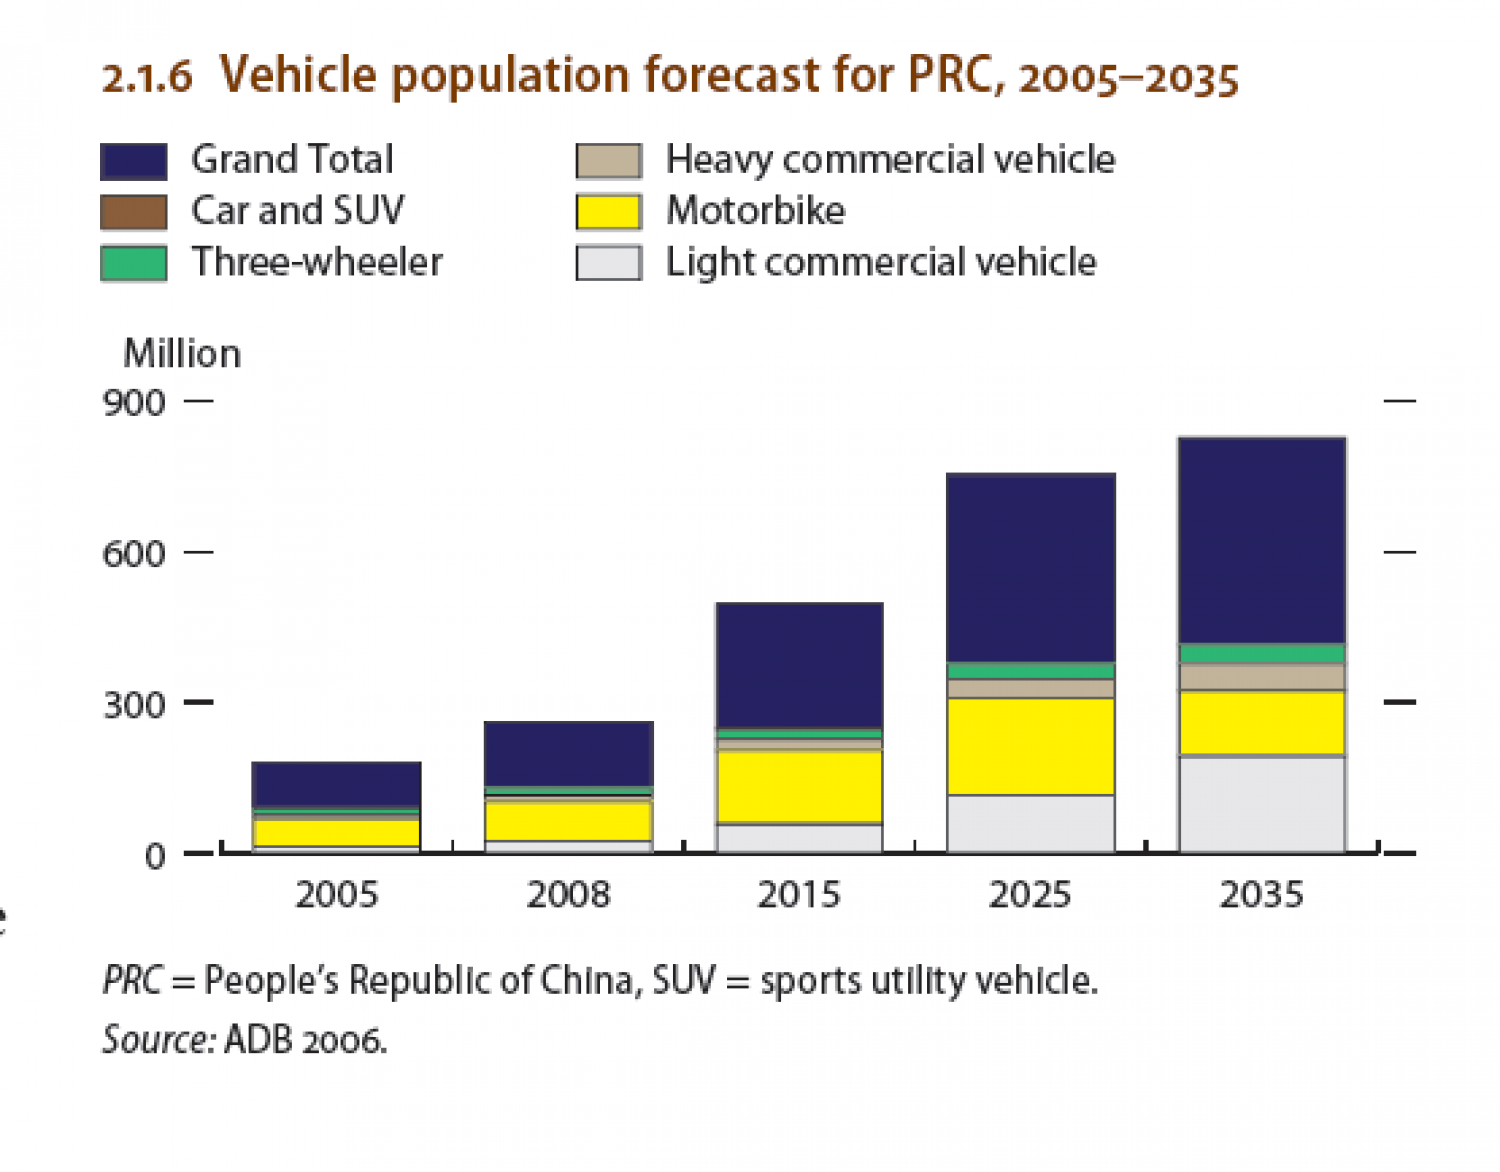 CHINA : Vehicle population forecast for PRC, 2005-2035 Infographic